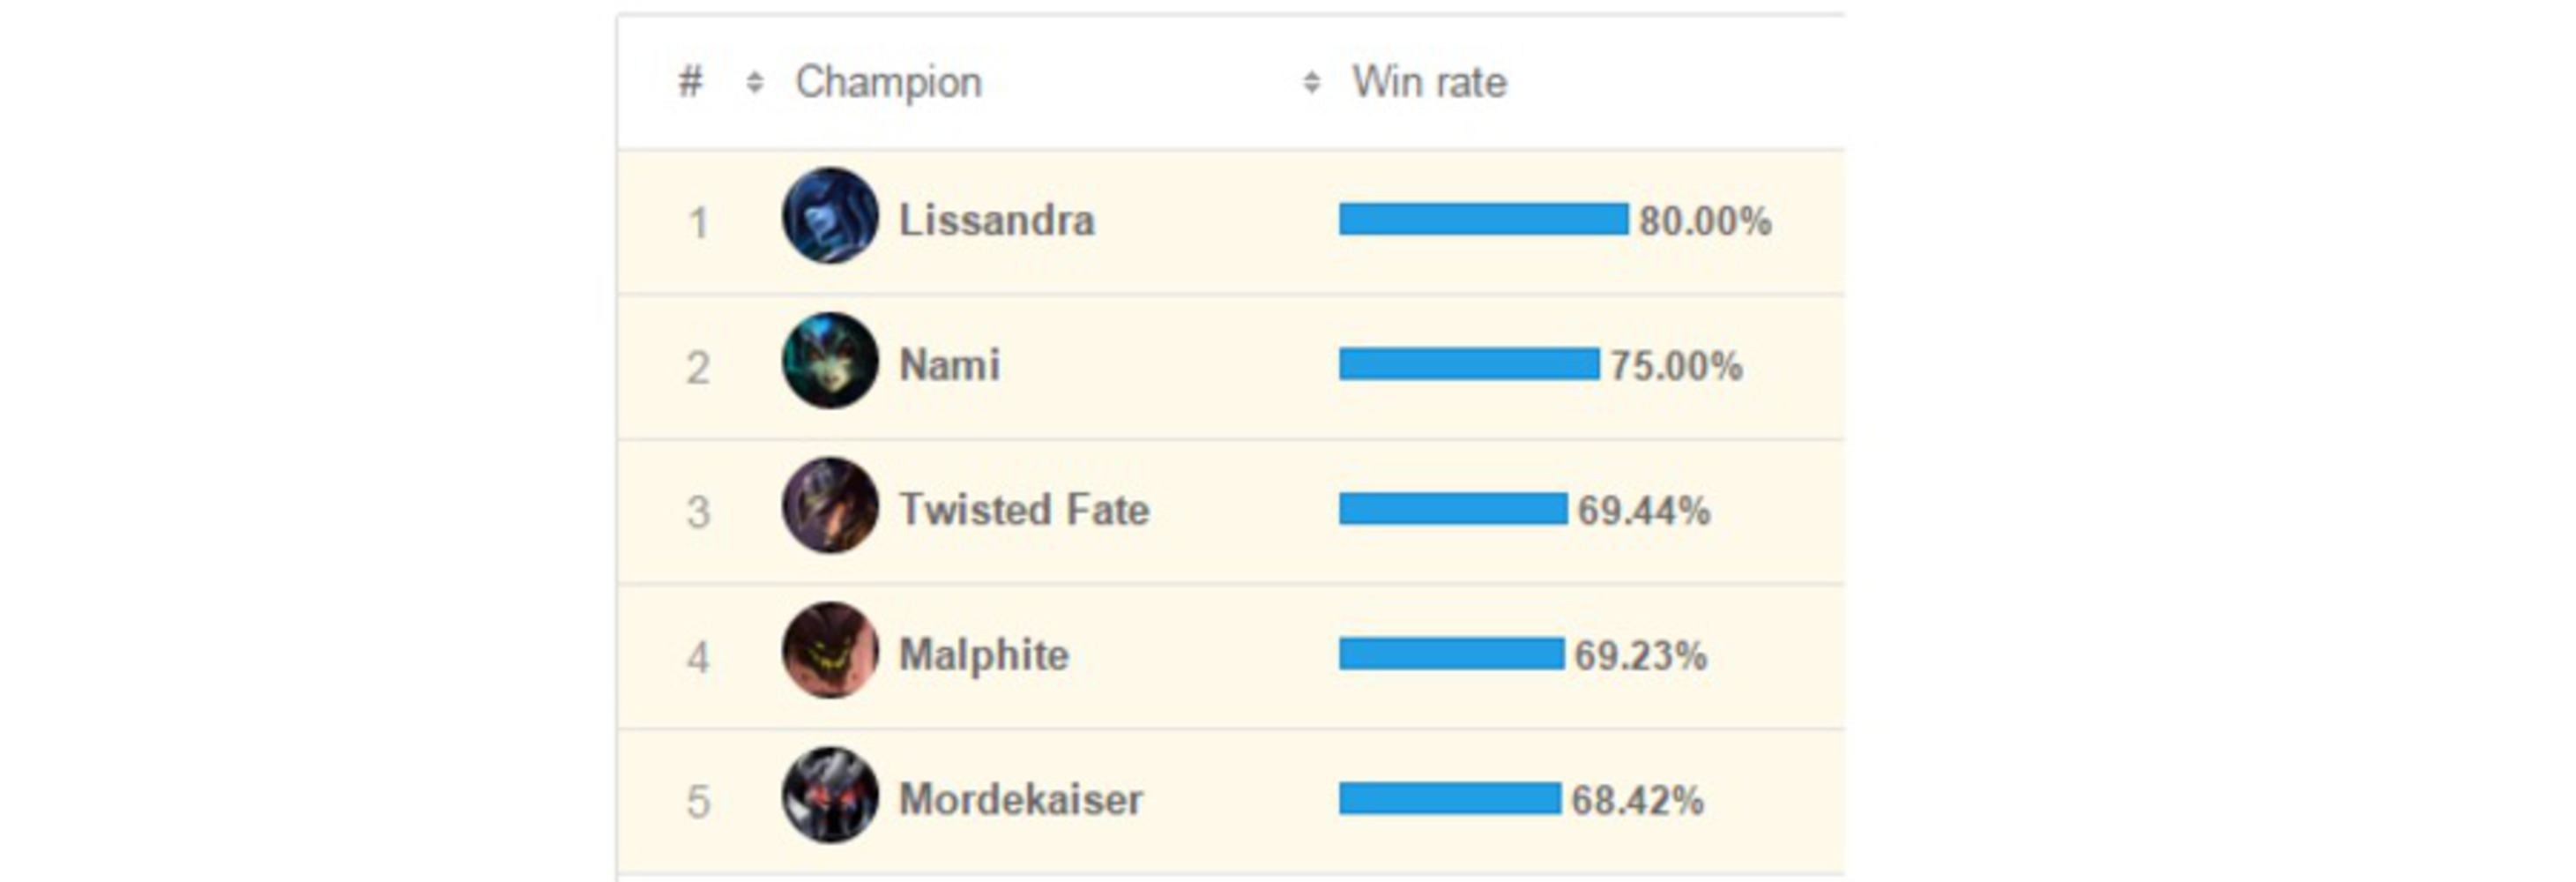 Top win rate challenger.png.thumb